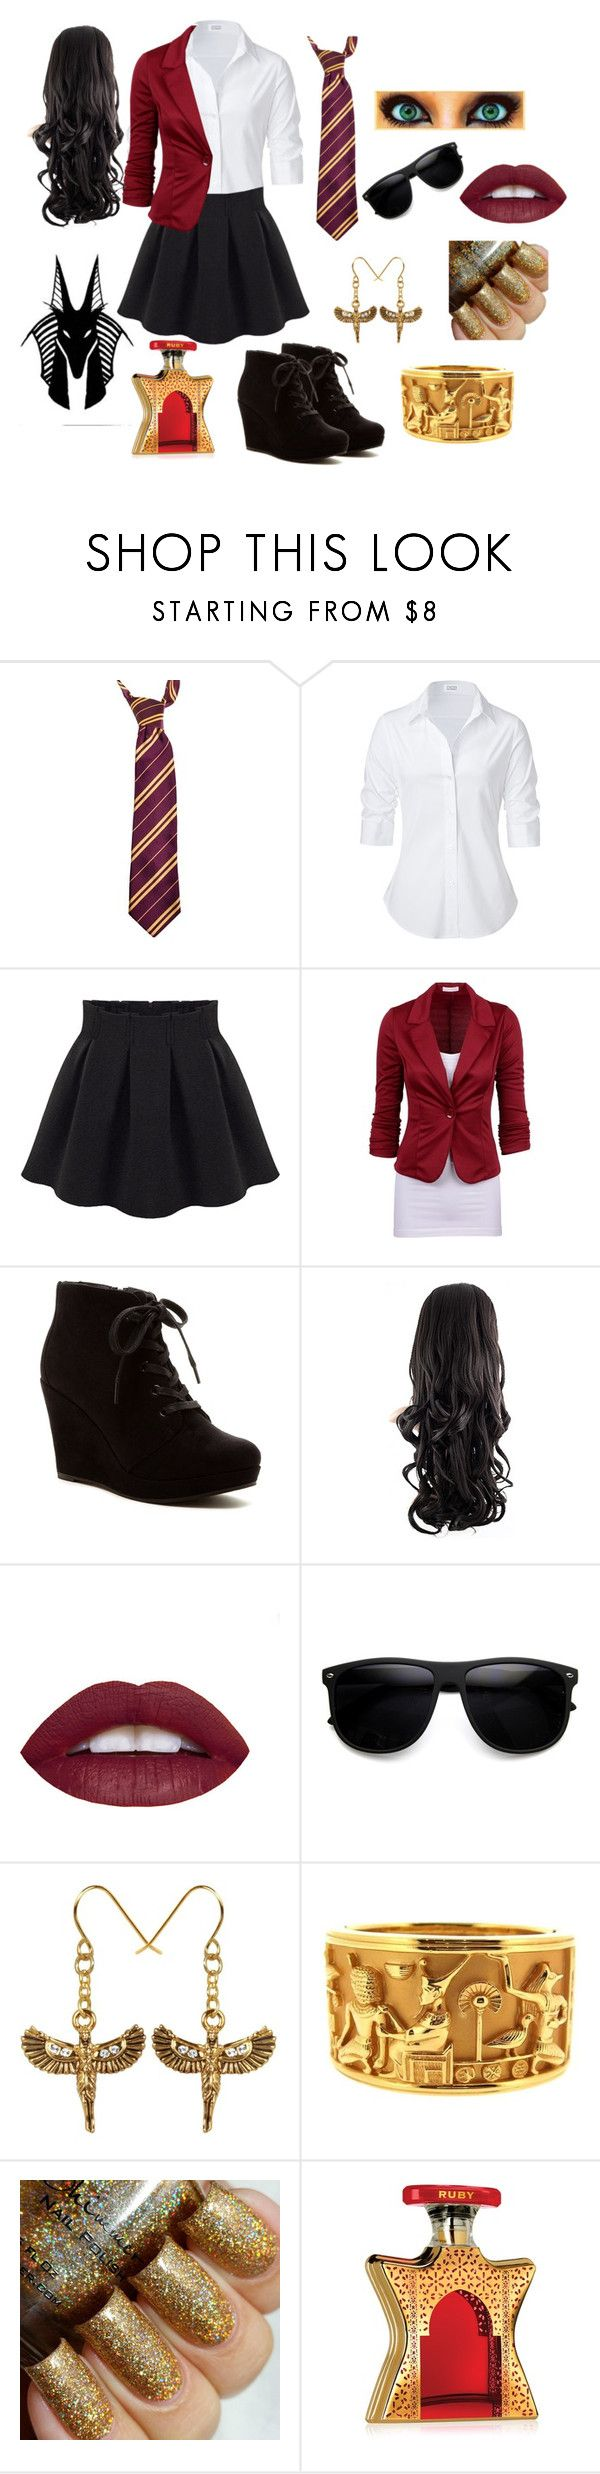 """House of Anubis"" by rczar99 ❤ liked on Polyvore featuring Steffen Schraut, Rampage and Bond No. 9"